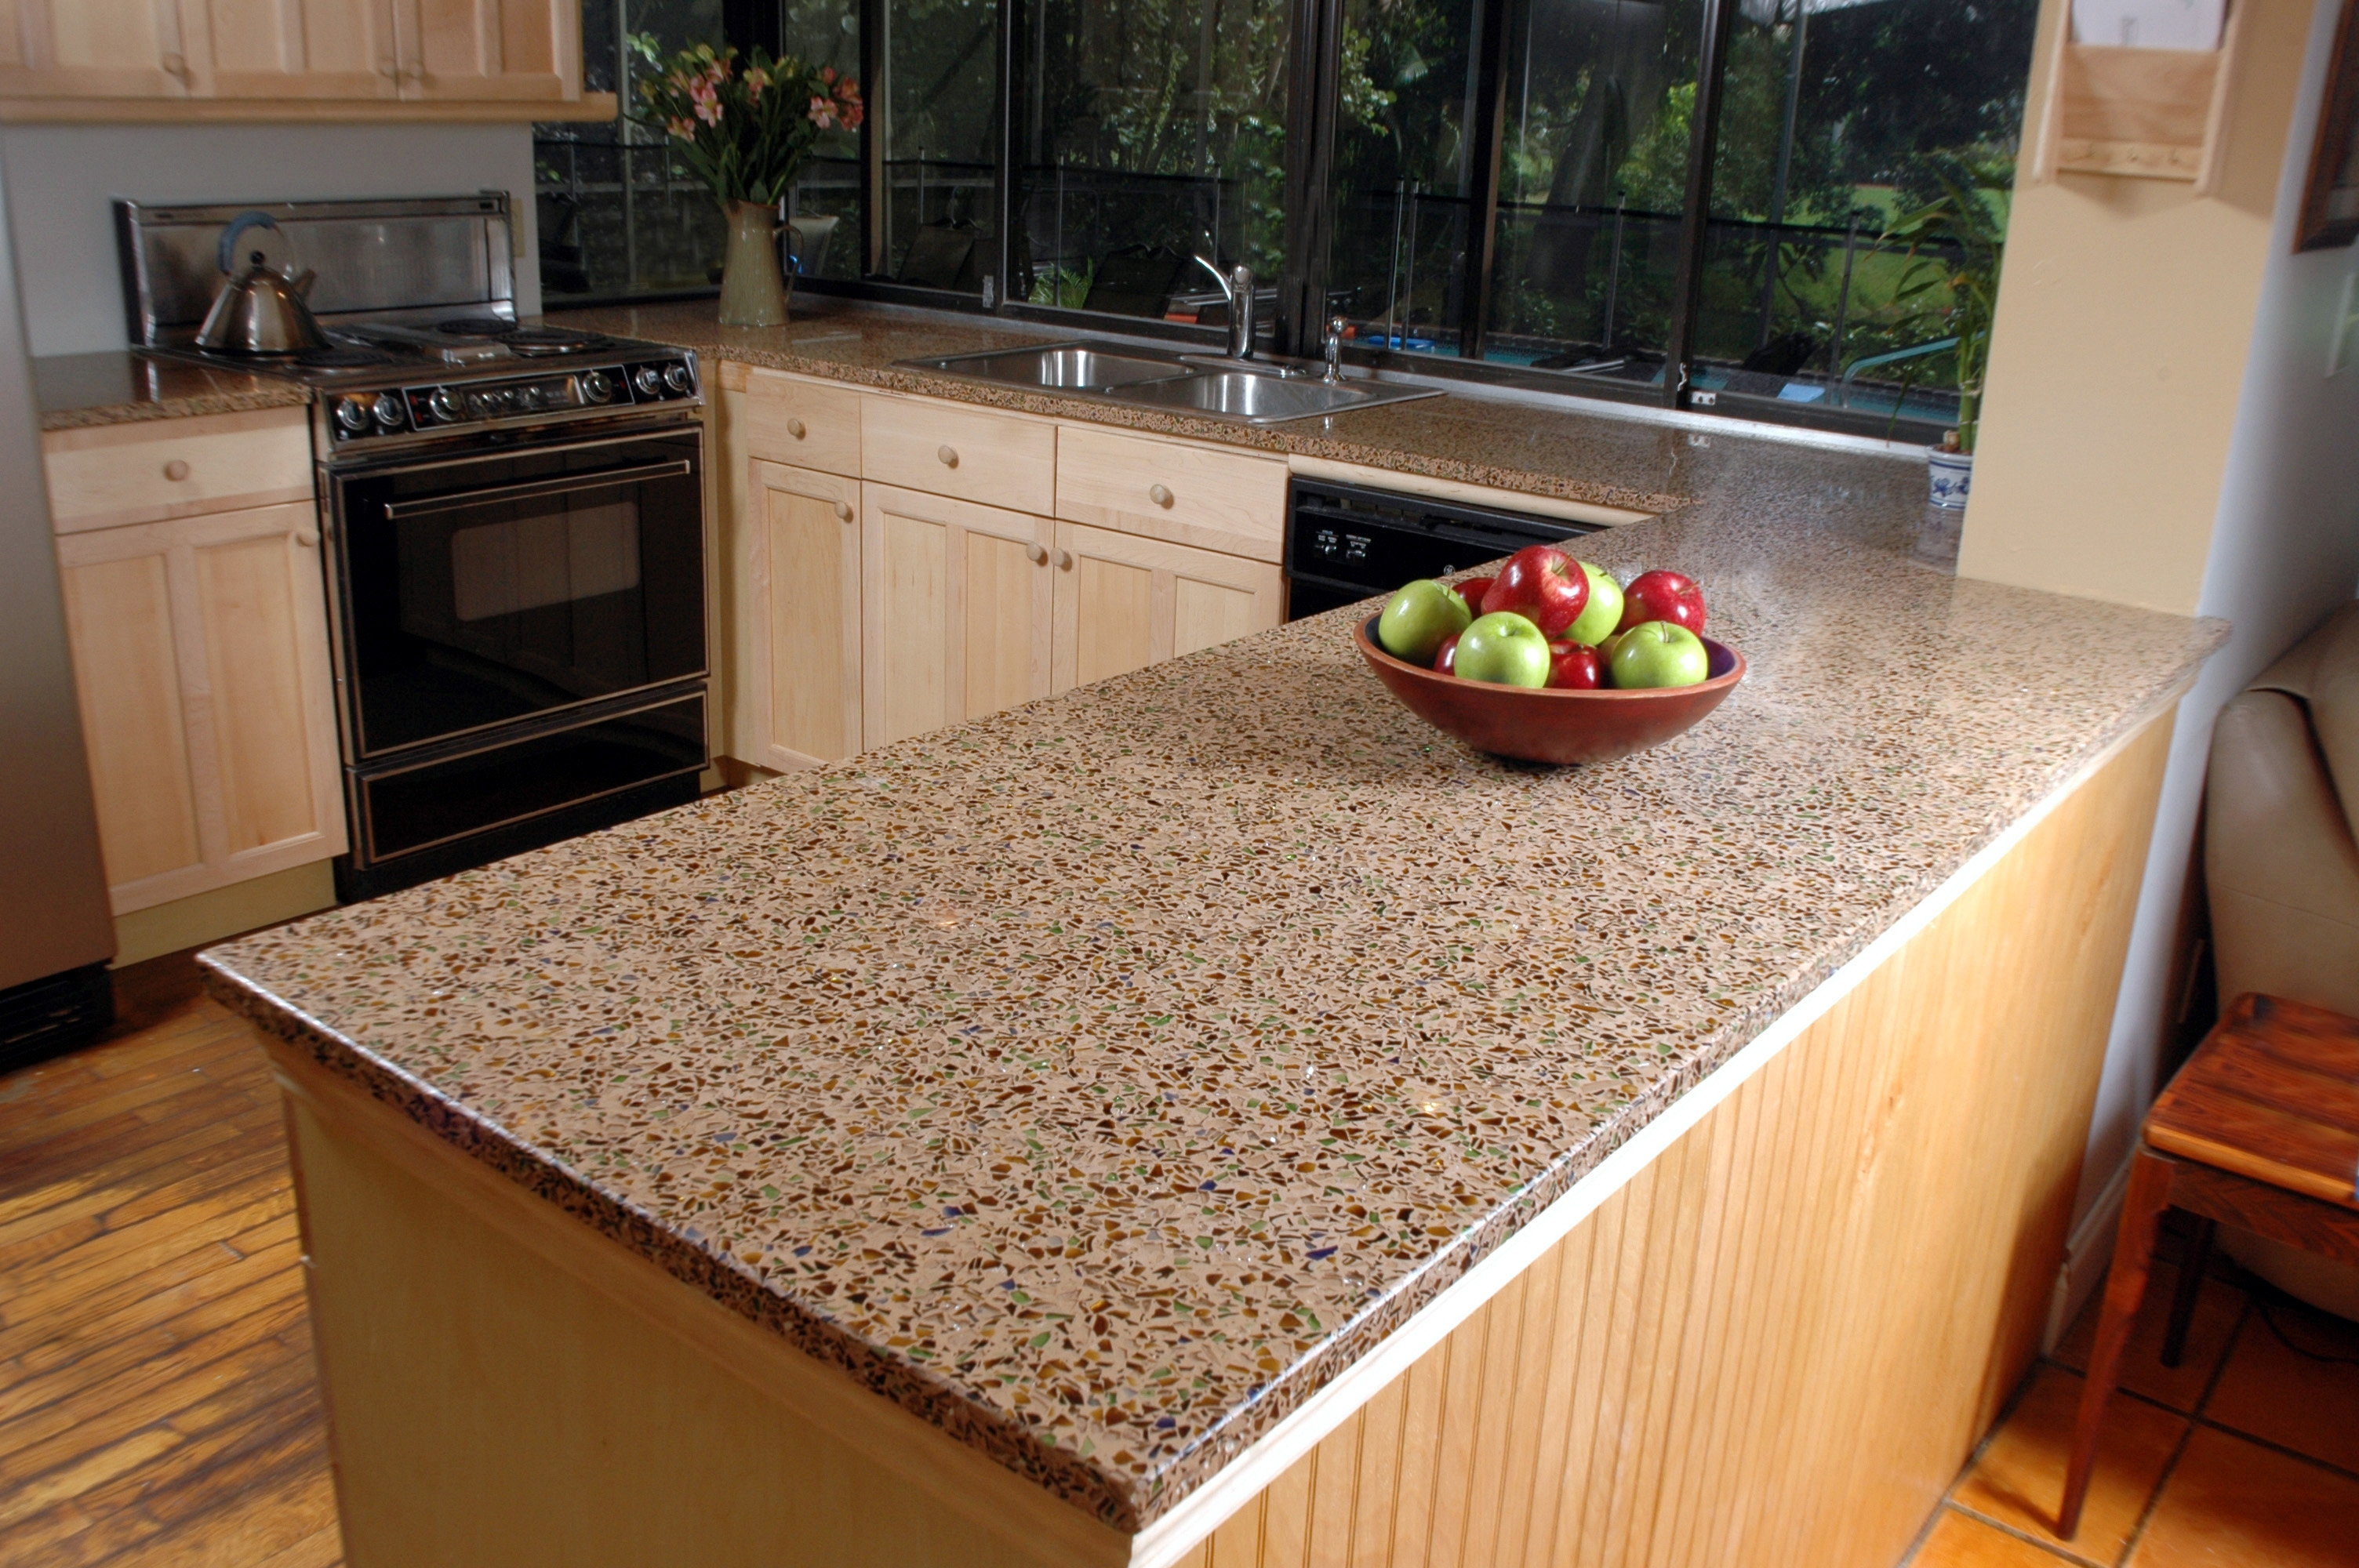 Give Your Kitchen A Facelift With New Stone Countertops